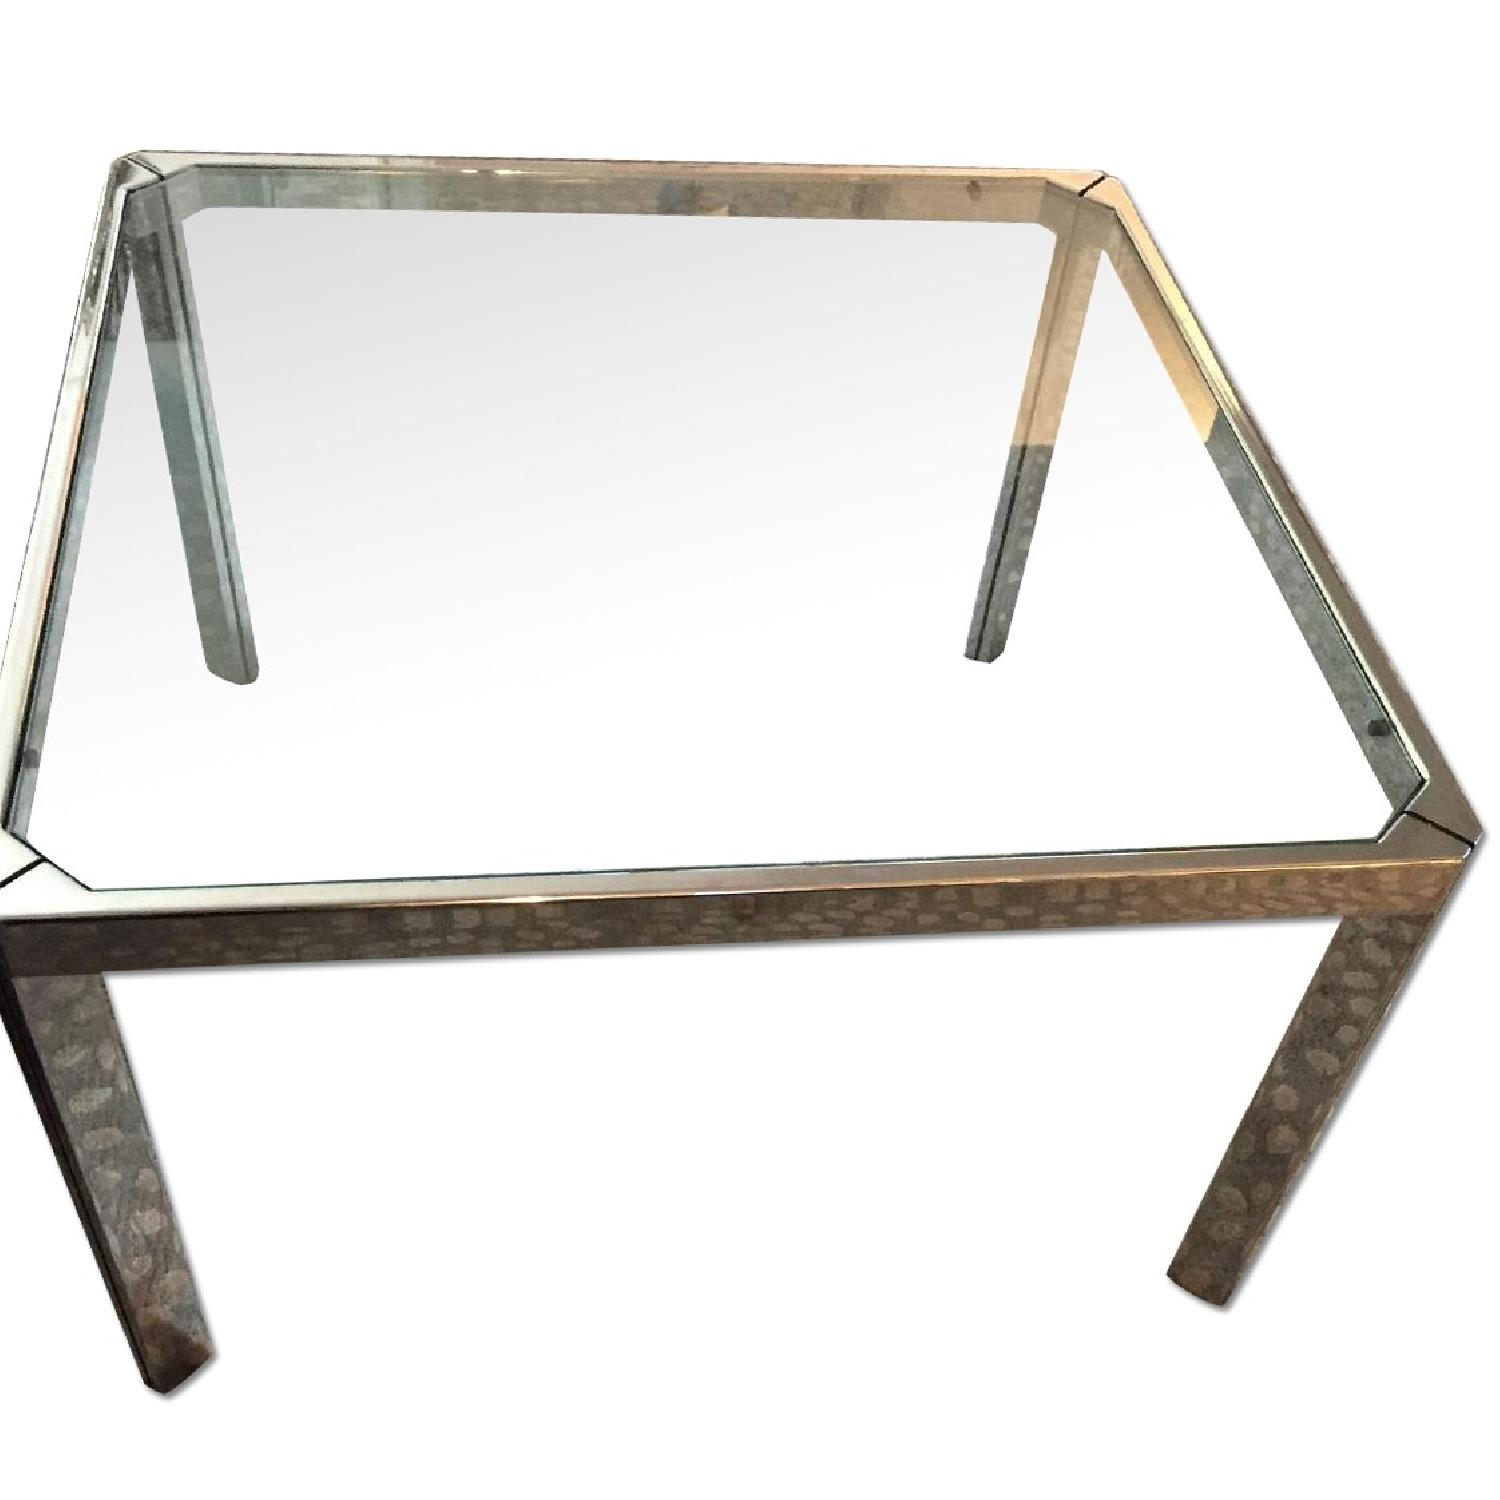 Chromed Steel & Glass Coffee Table - image-0